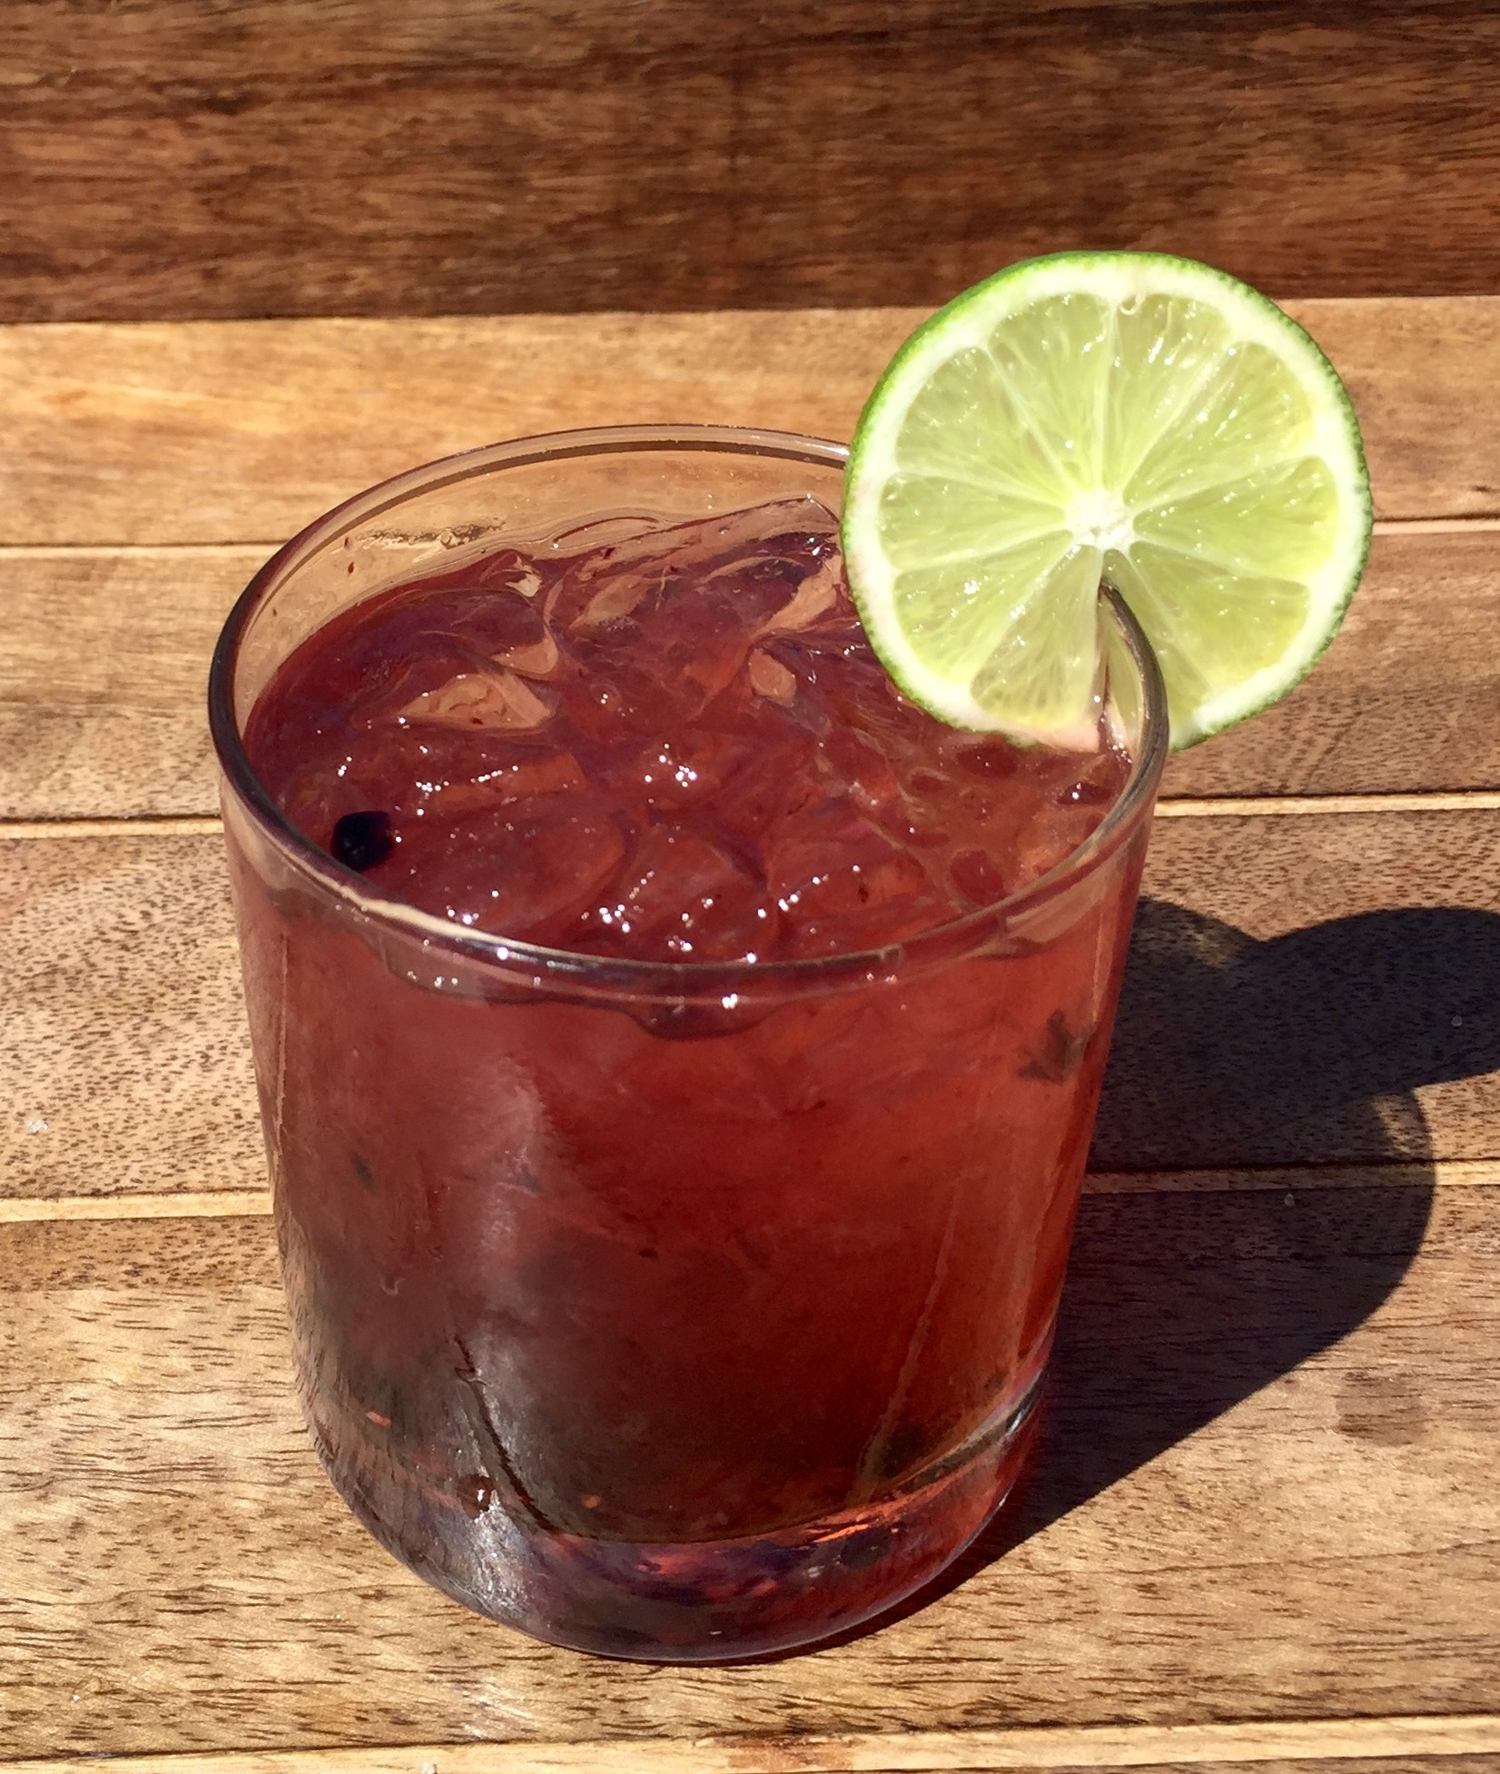 Blackberry Agave Margarita